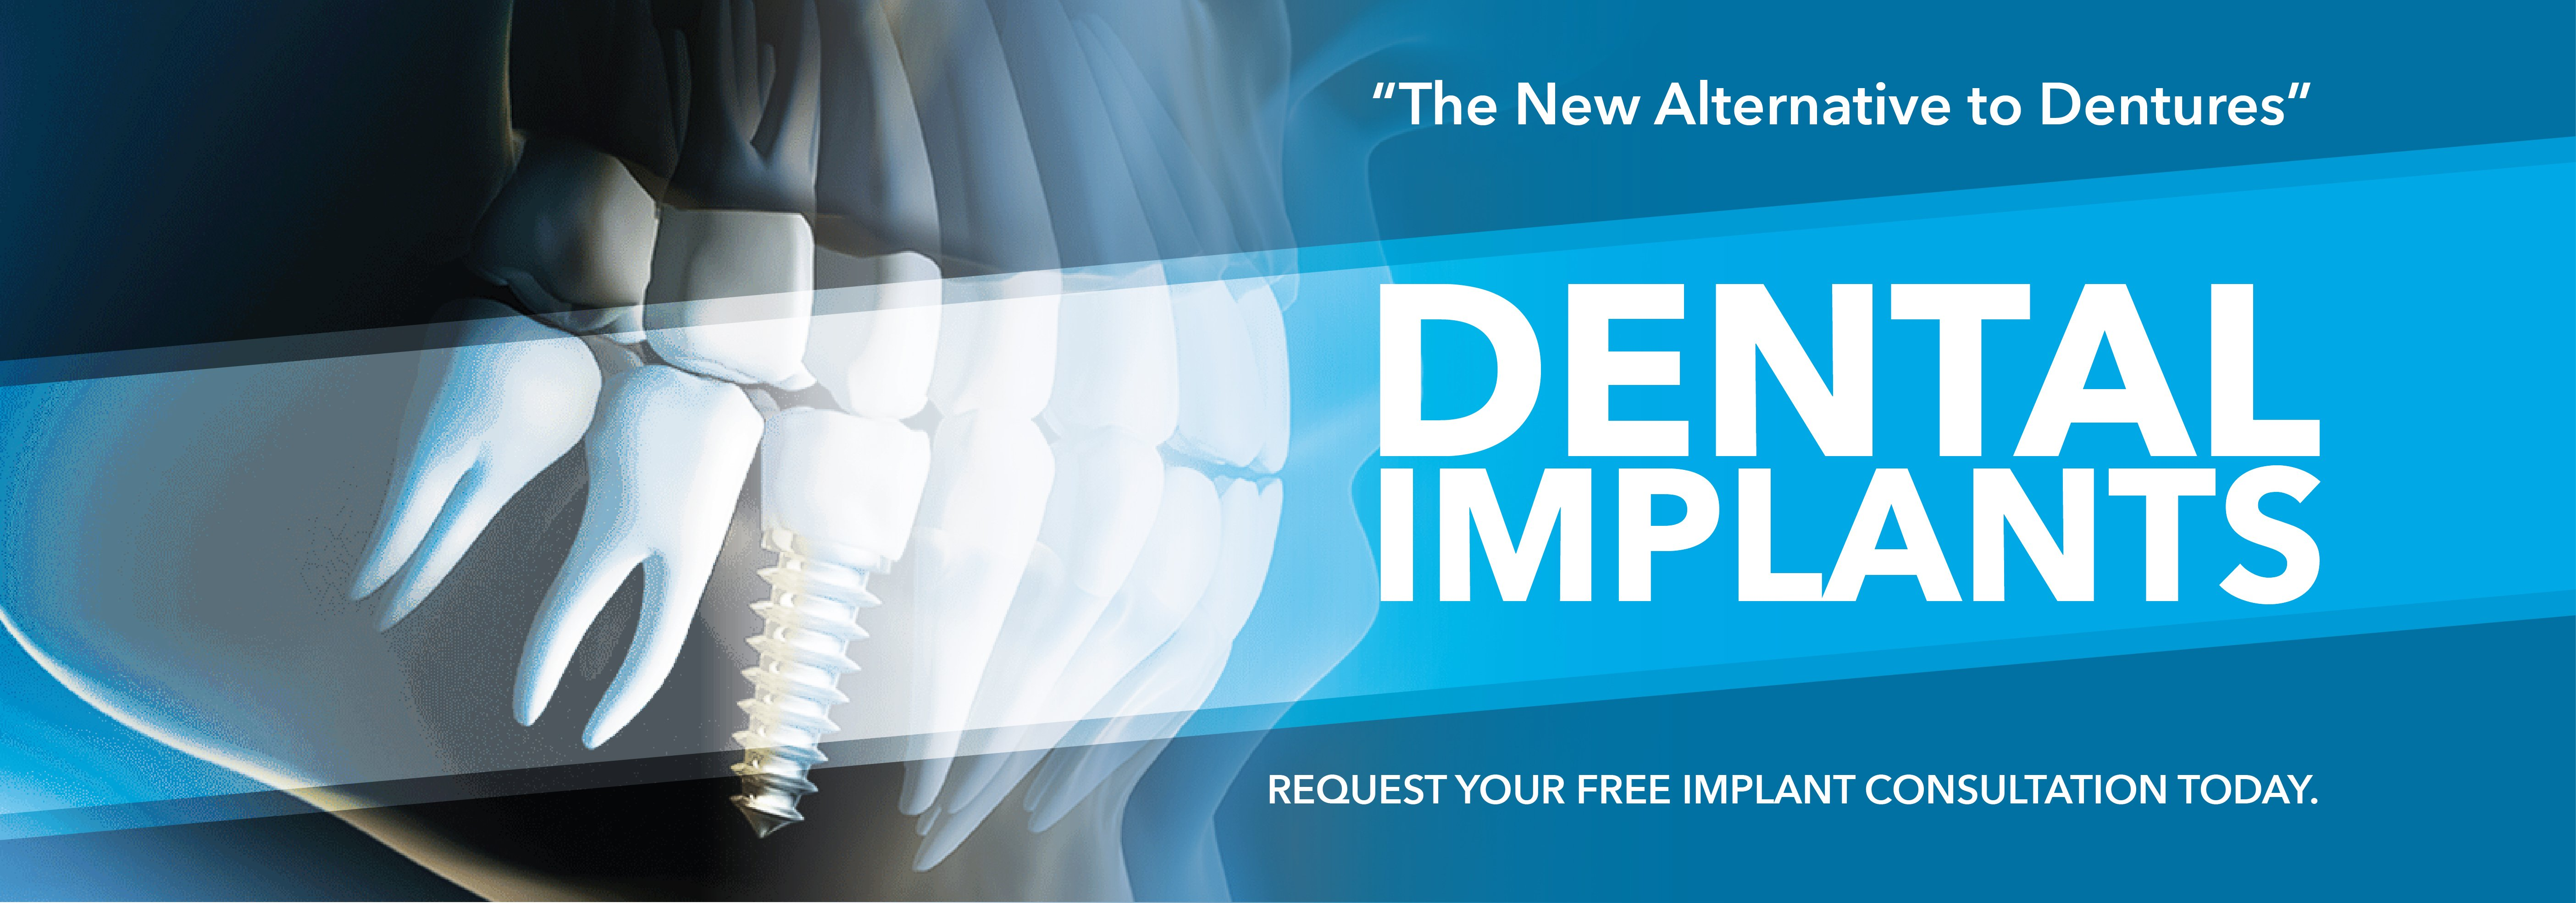 Dental implants consult in Arkansas, Tennessee and Missouri